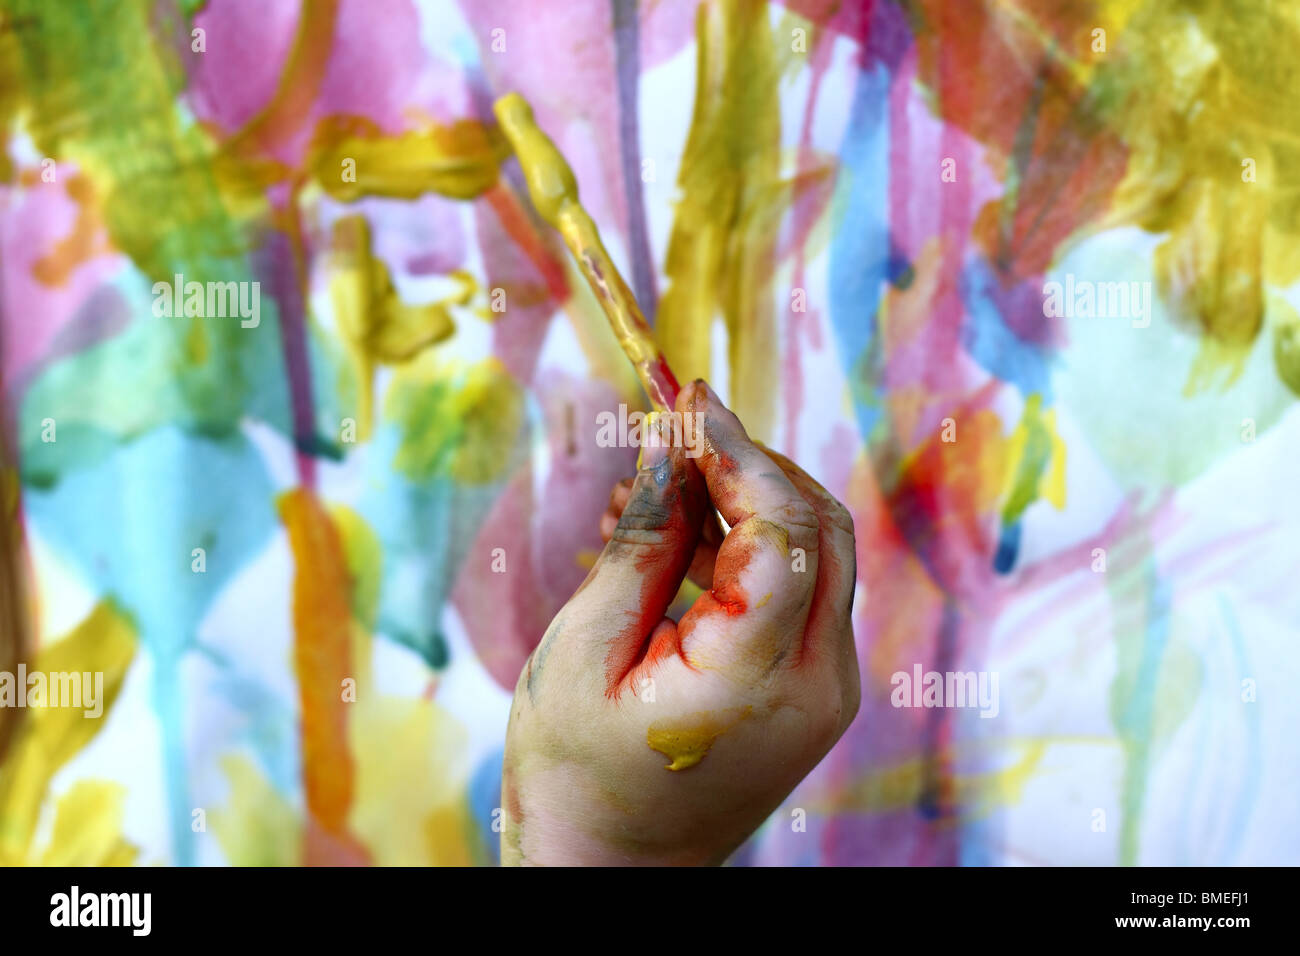 children little artist painting hand brush colorful watercolor art - Stock Image